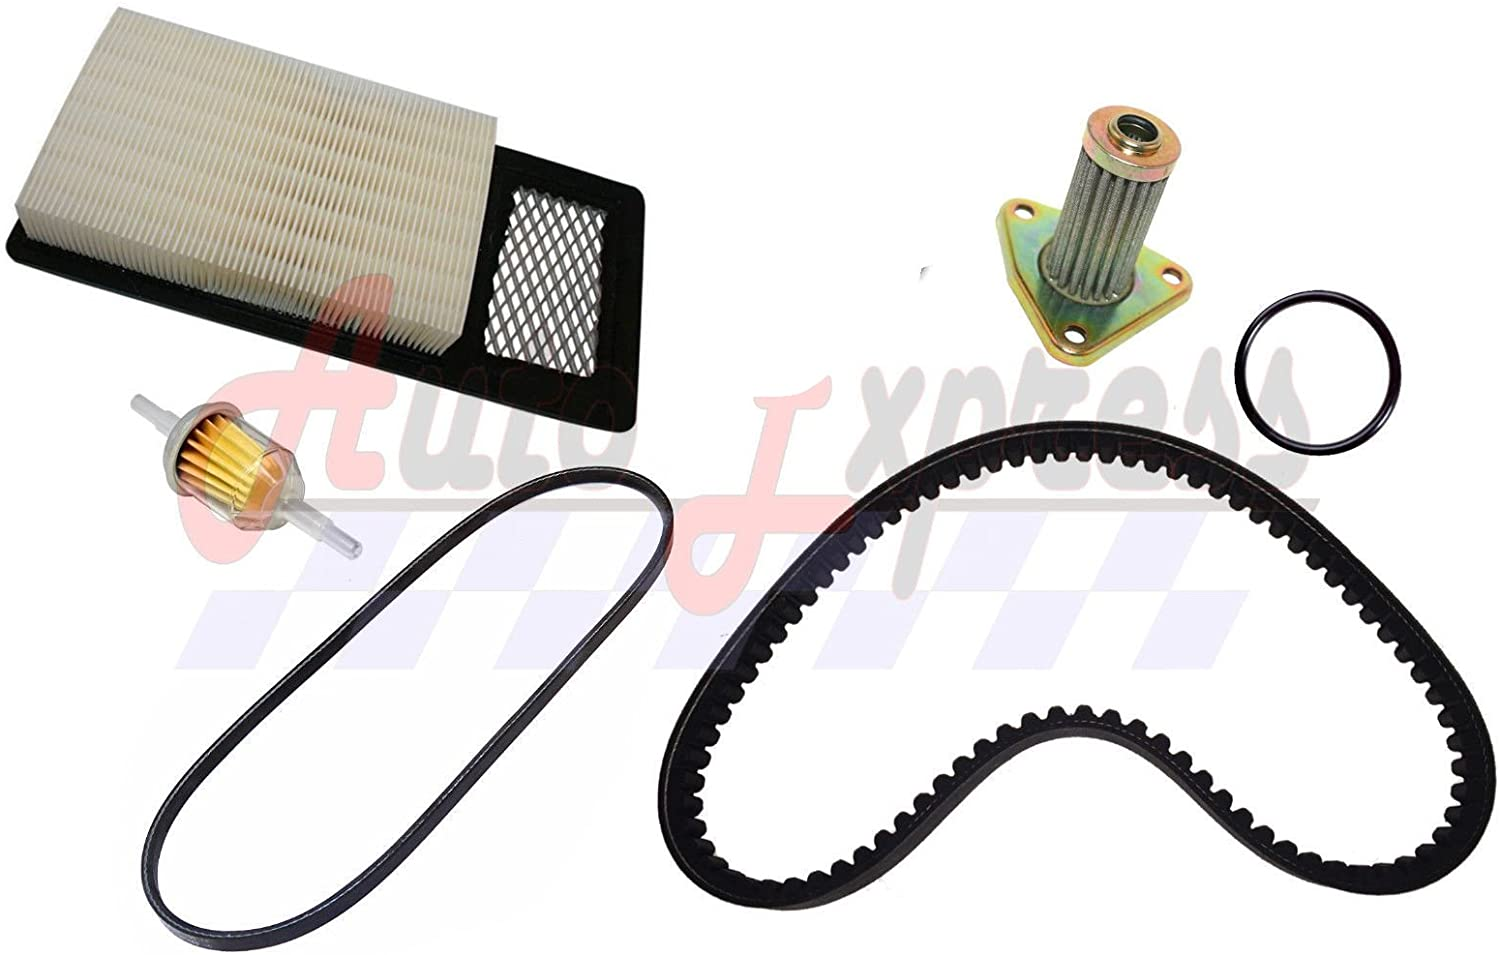 Auto Express Golf Cart Tune Up Kit for EZGO TXT Medalist 1994-2004, 4 Cycle Drive, Starter Belts & Air, Oil Fuel Filters